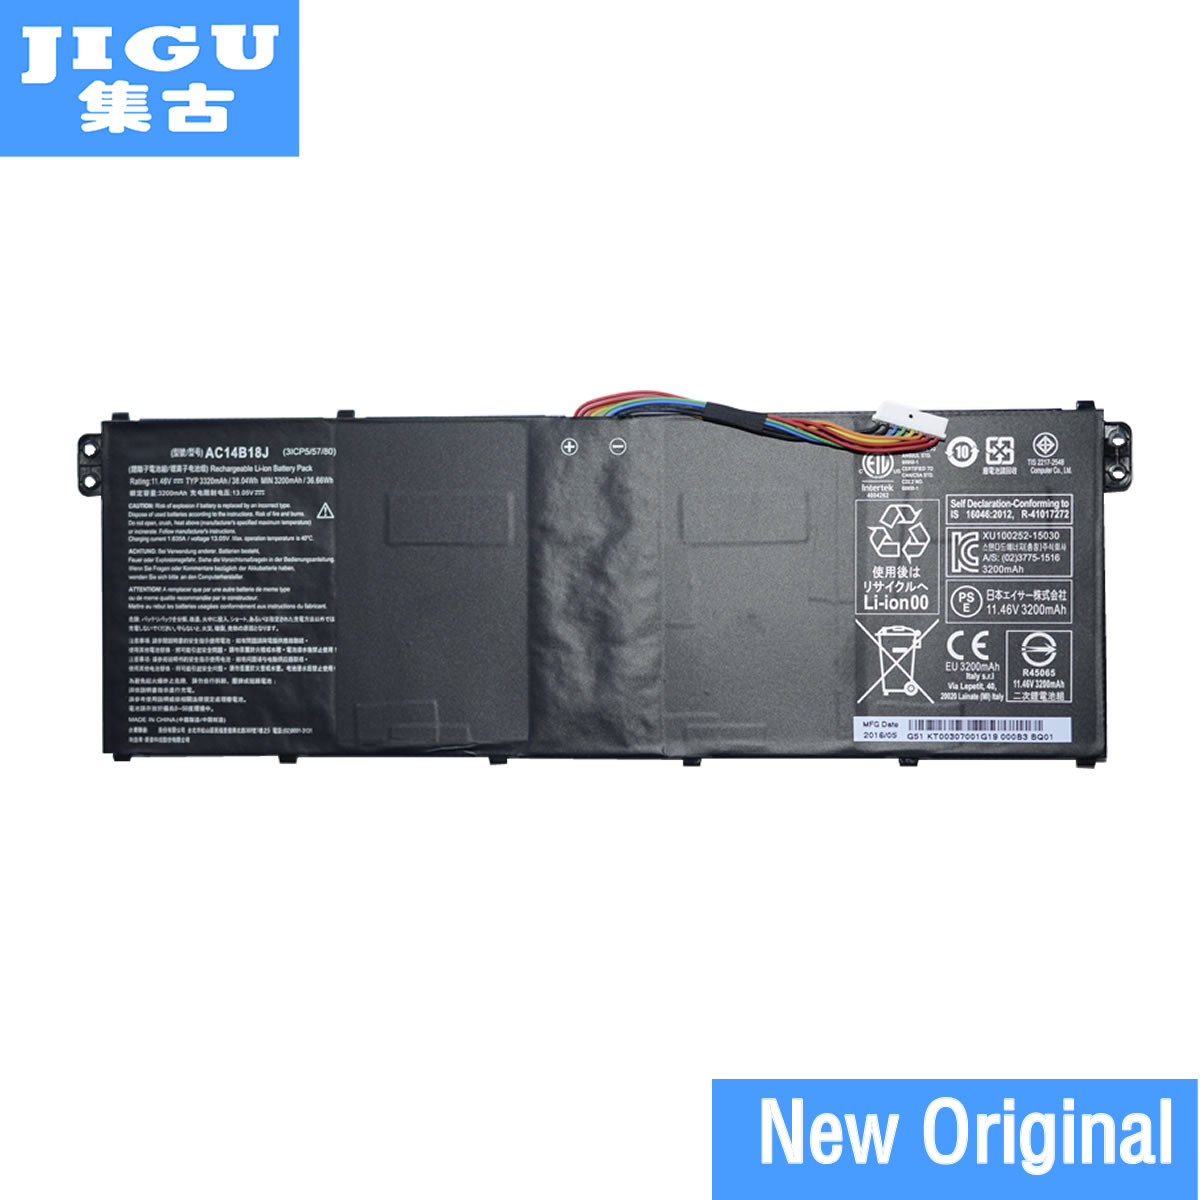 цена на JIGU Original Laptop Battery AC14B18J FOR ACER Aspire E3-111 E5-731 E5-771G ES1-511 ES1-711 R13 R3-131T R5-471T R7-372T